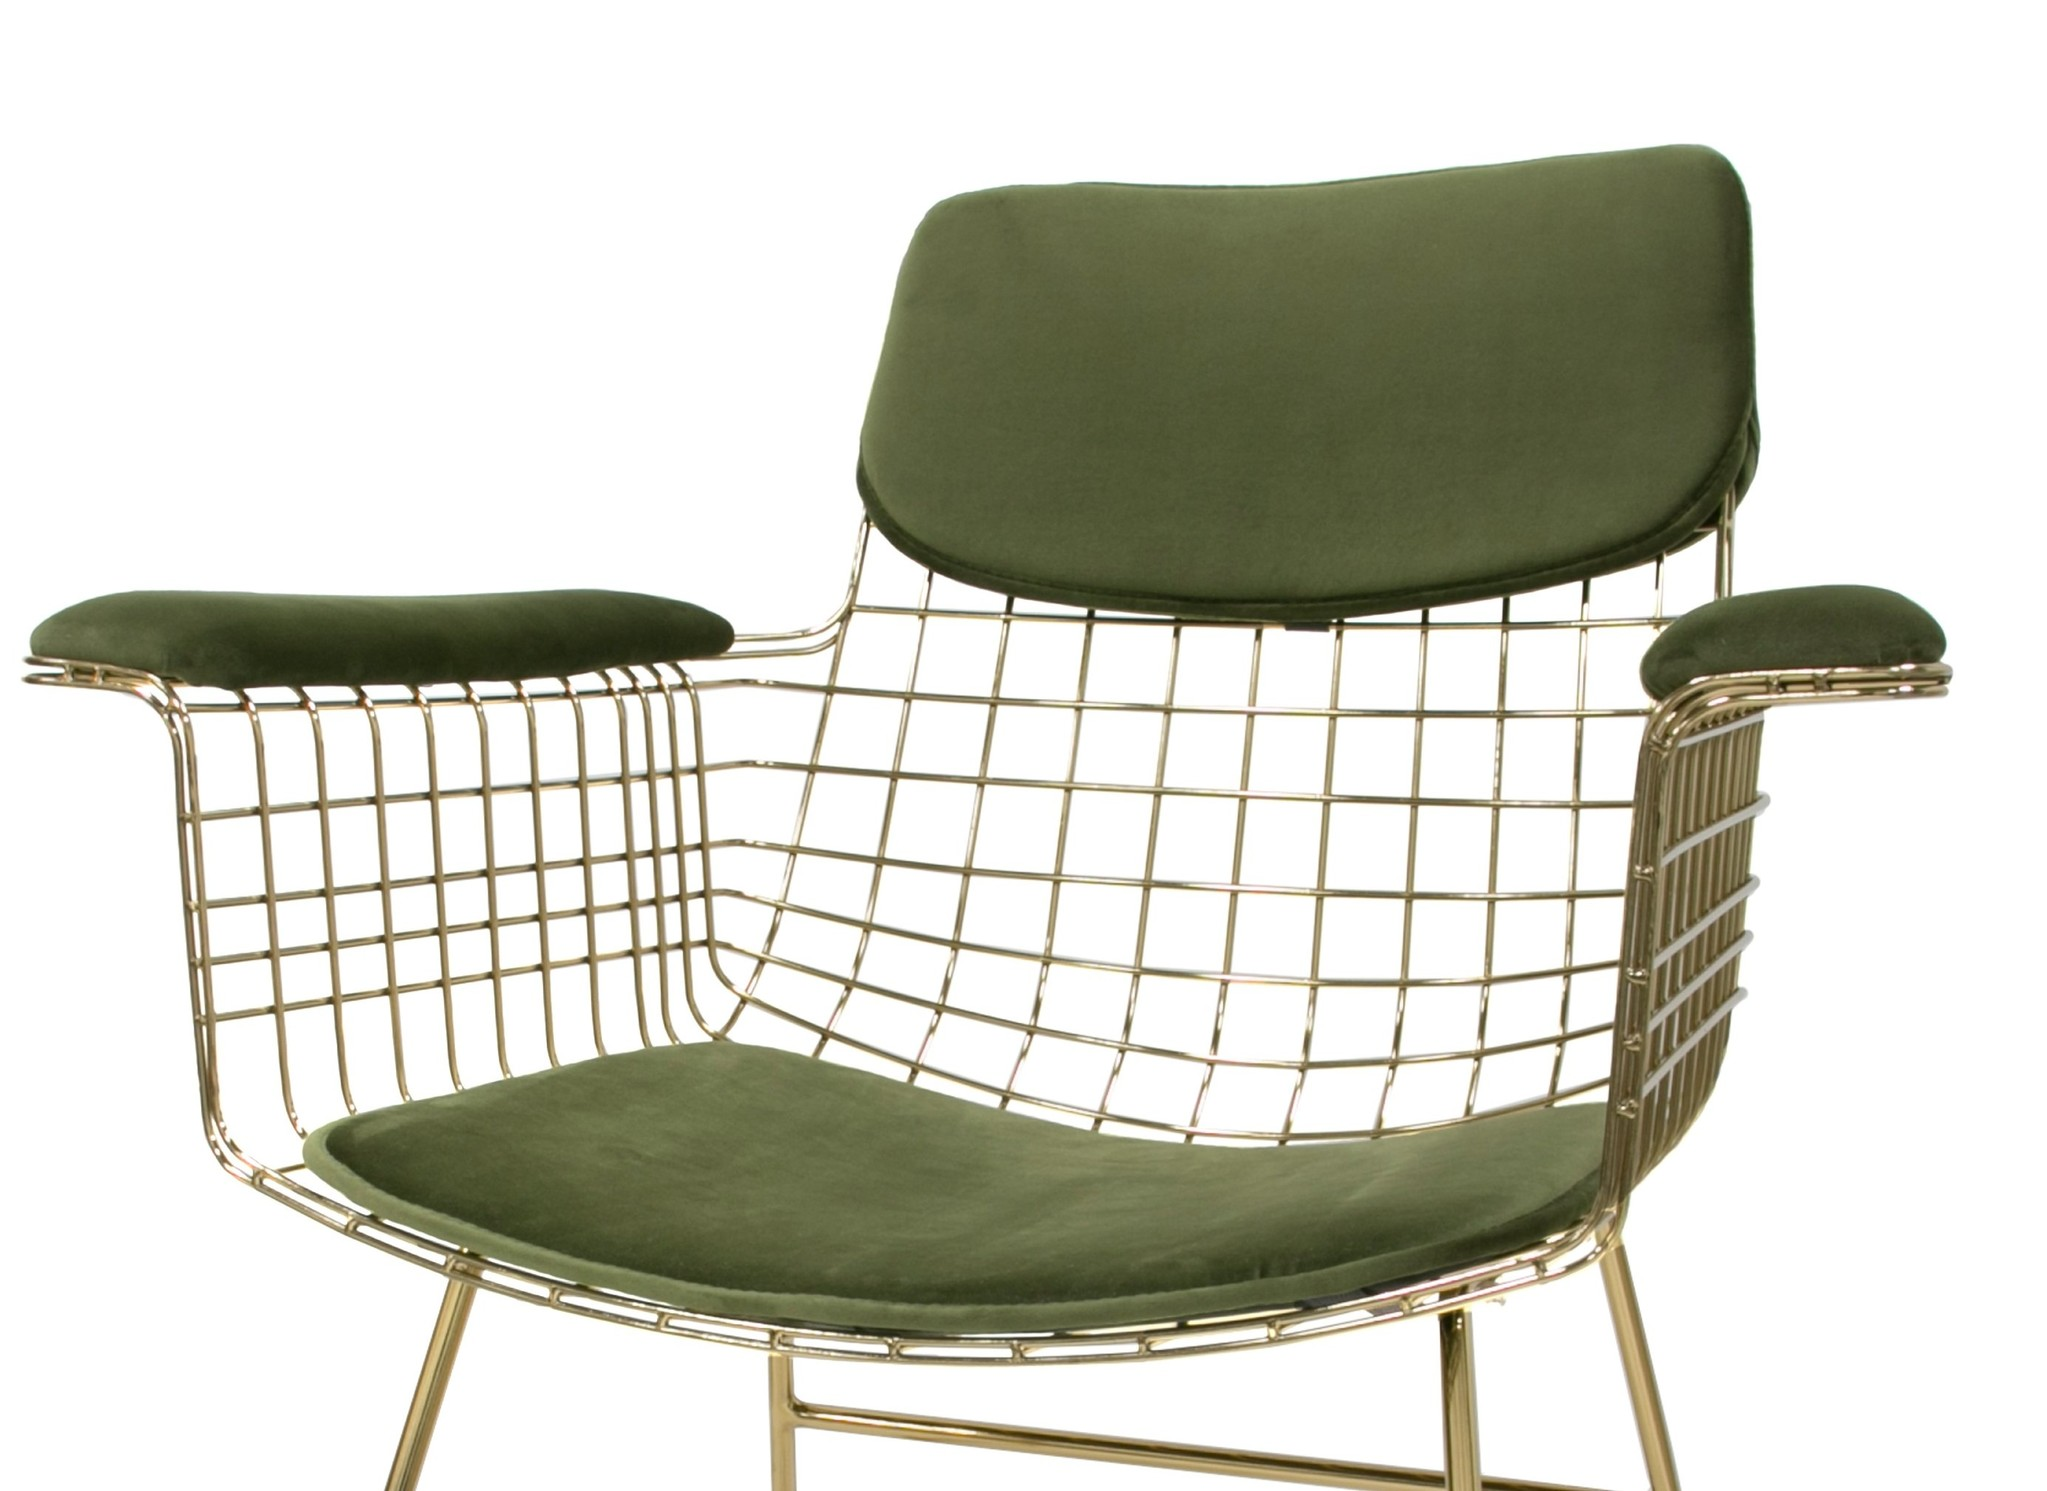 Kussens wire chair with arms comfort kit velvet green-1